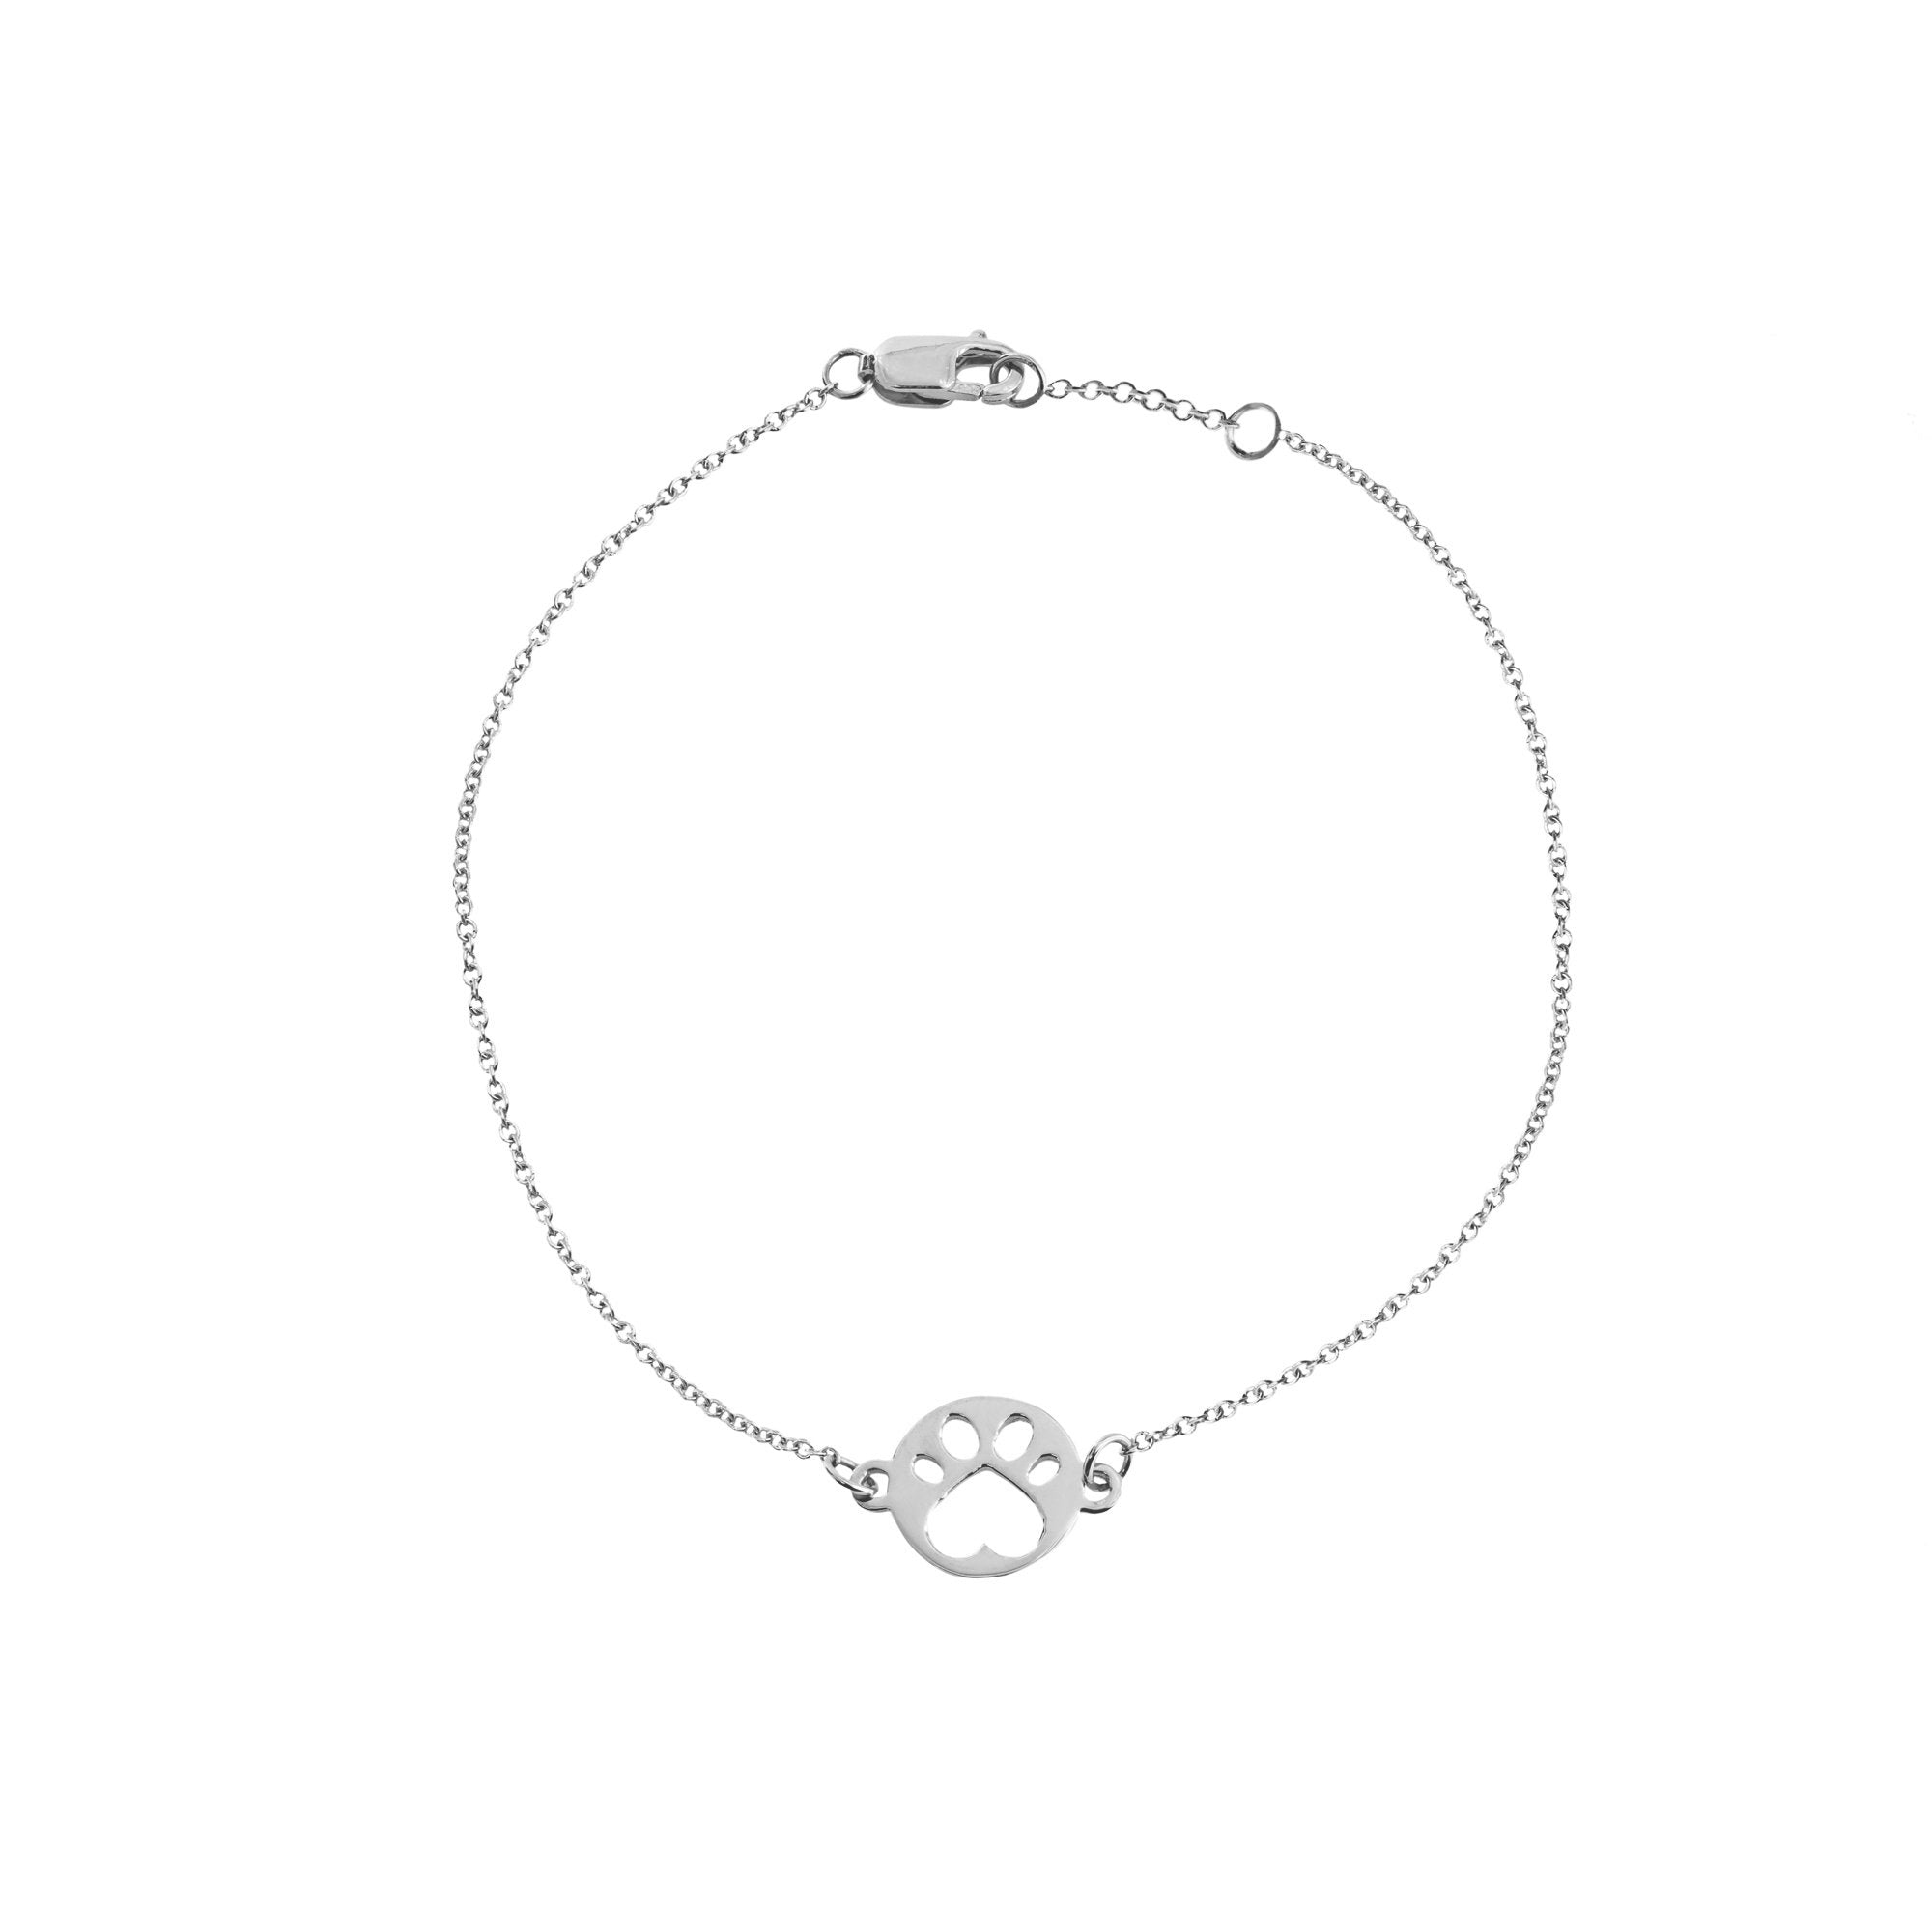 Our Cause for Paws 7 inch Mini Paw Bracelet